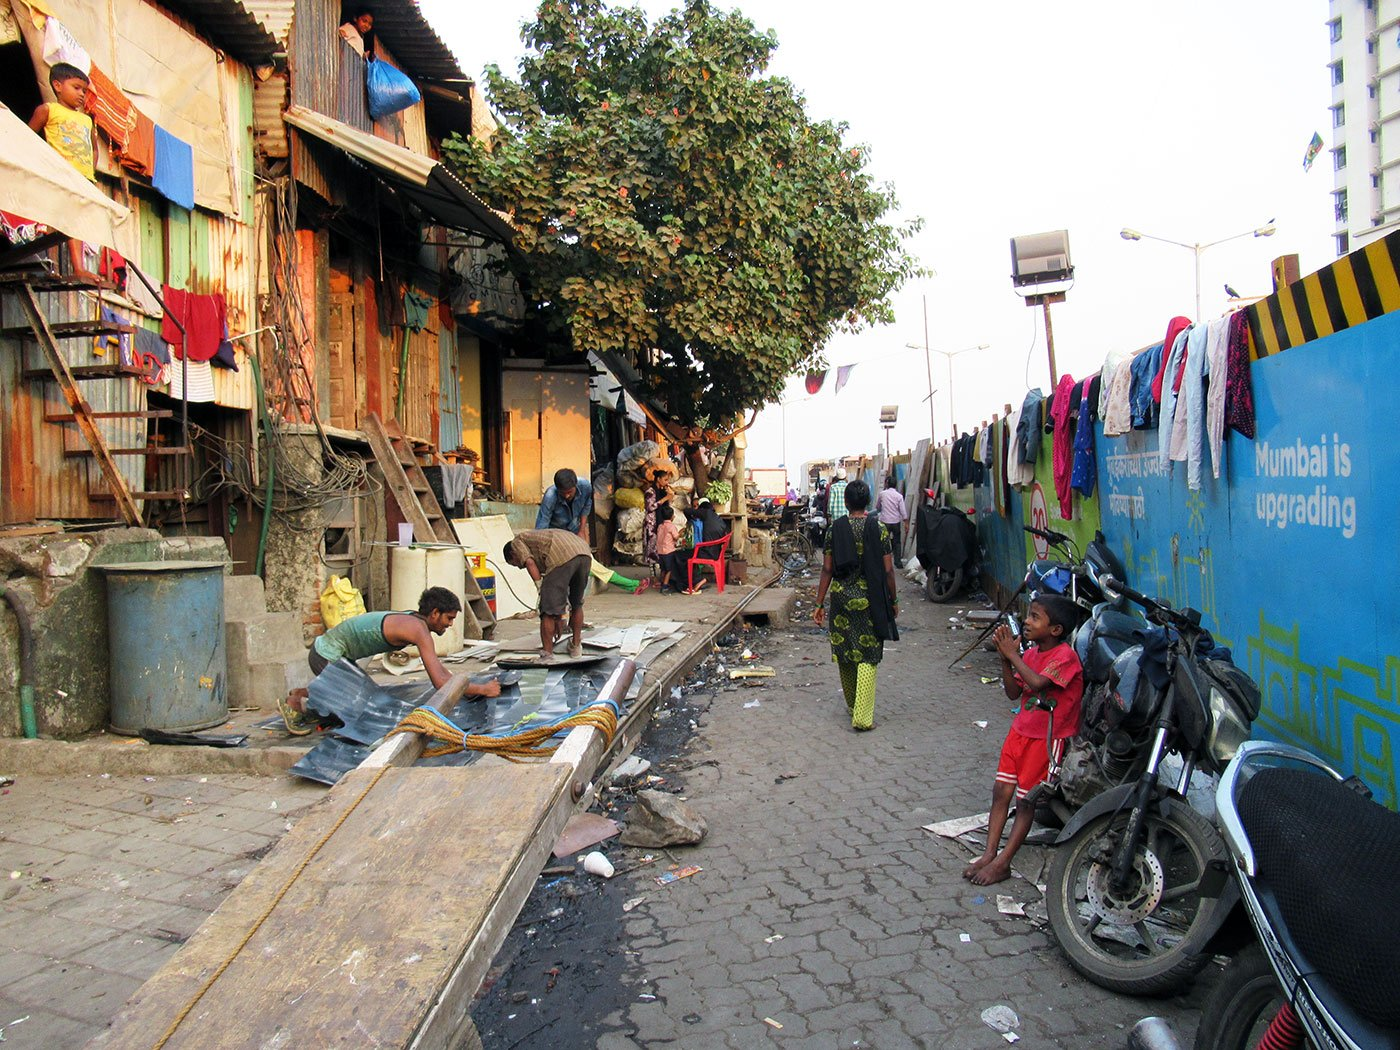 A road in Dharavi, a slum in Mumbai